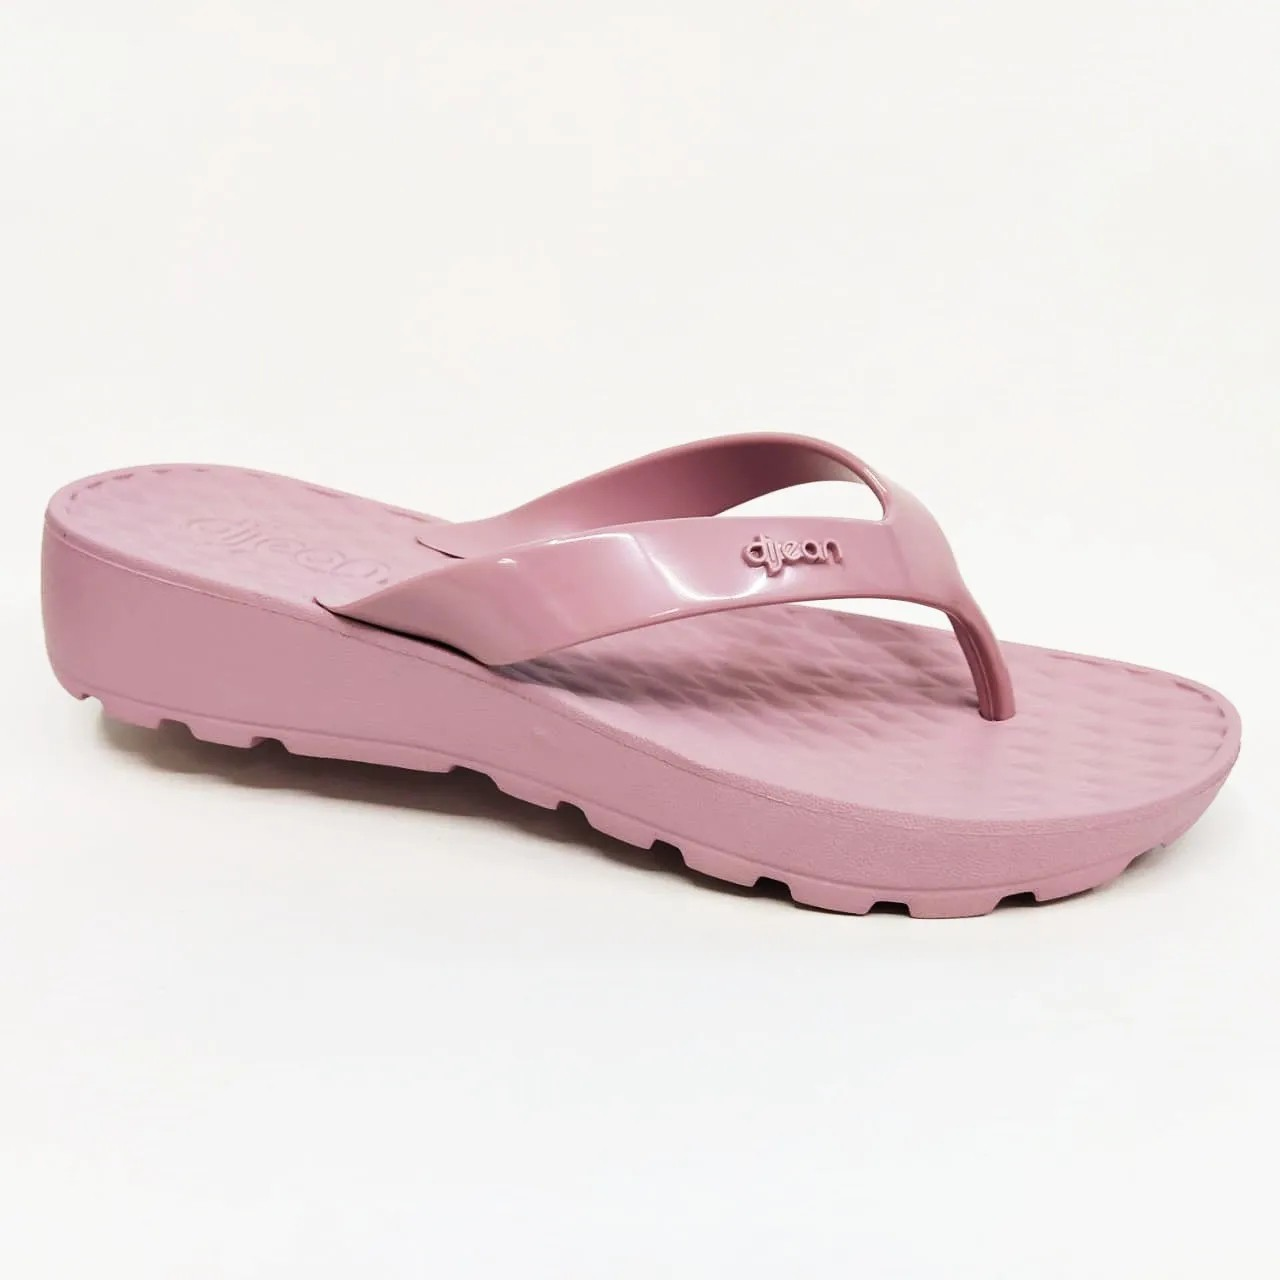 DIJEAN 282/058 1.00 ROSE QUARTZ 34-40